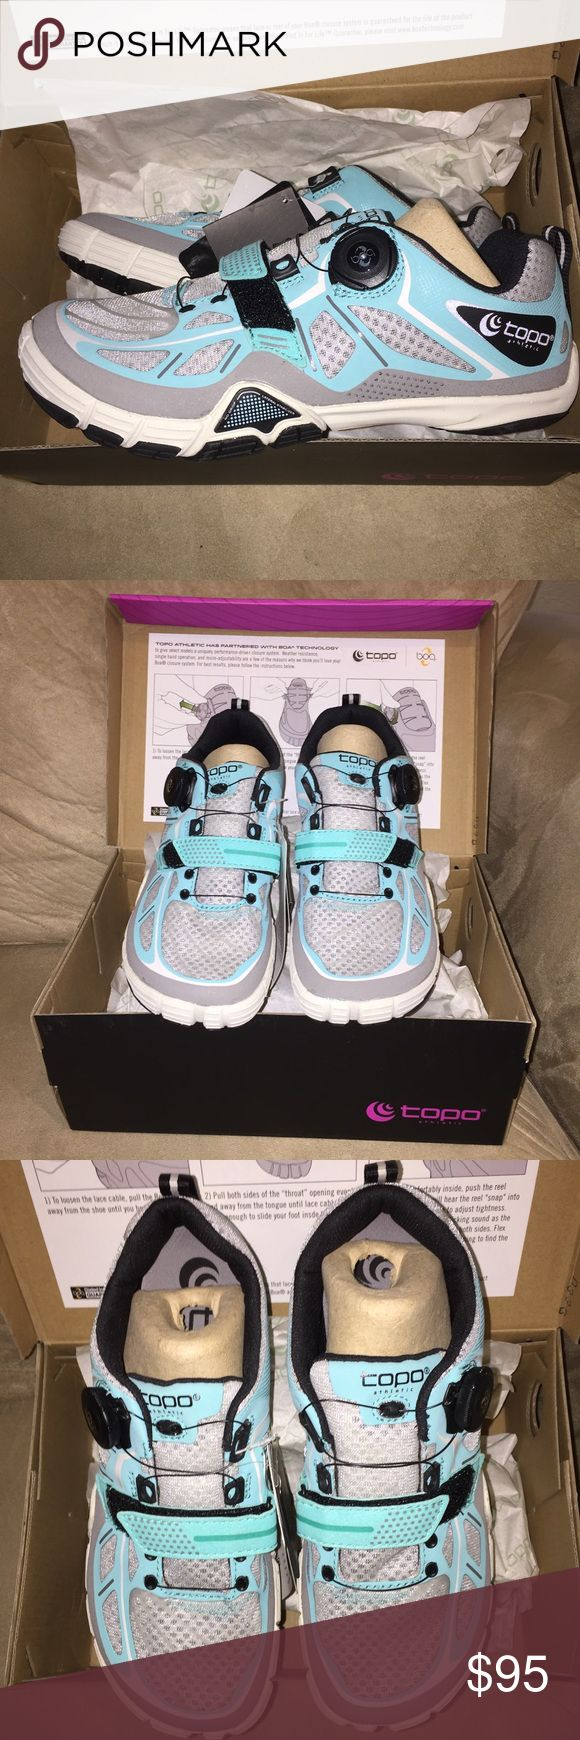 ✨TOPO ATHLETIC SANTE CROSS-TRAINING SHOES✨ NWT New In Box 📦. The manufacturer states that this shoe runs a half size larger than your regular shoe so although these are marked 7.5 I will be listing them as a 7 to insure proper fit per the manufacturer description. Gray, white, black & turquoise. Topo Athletic Shoes